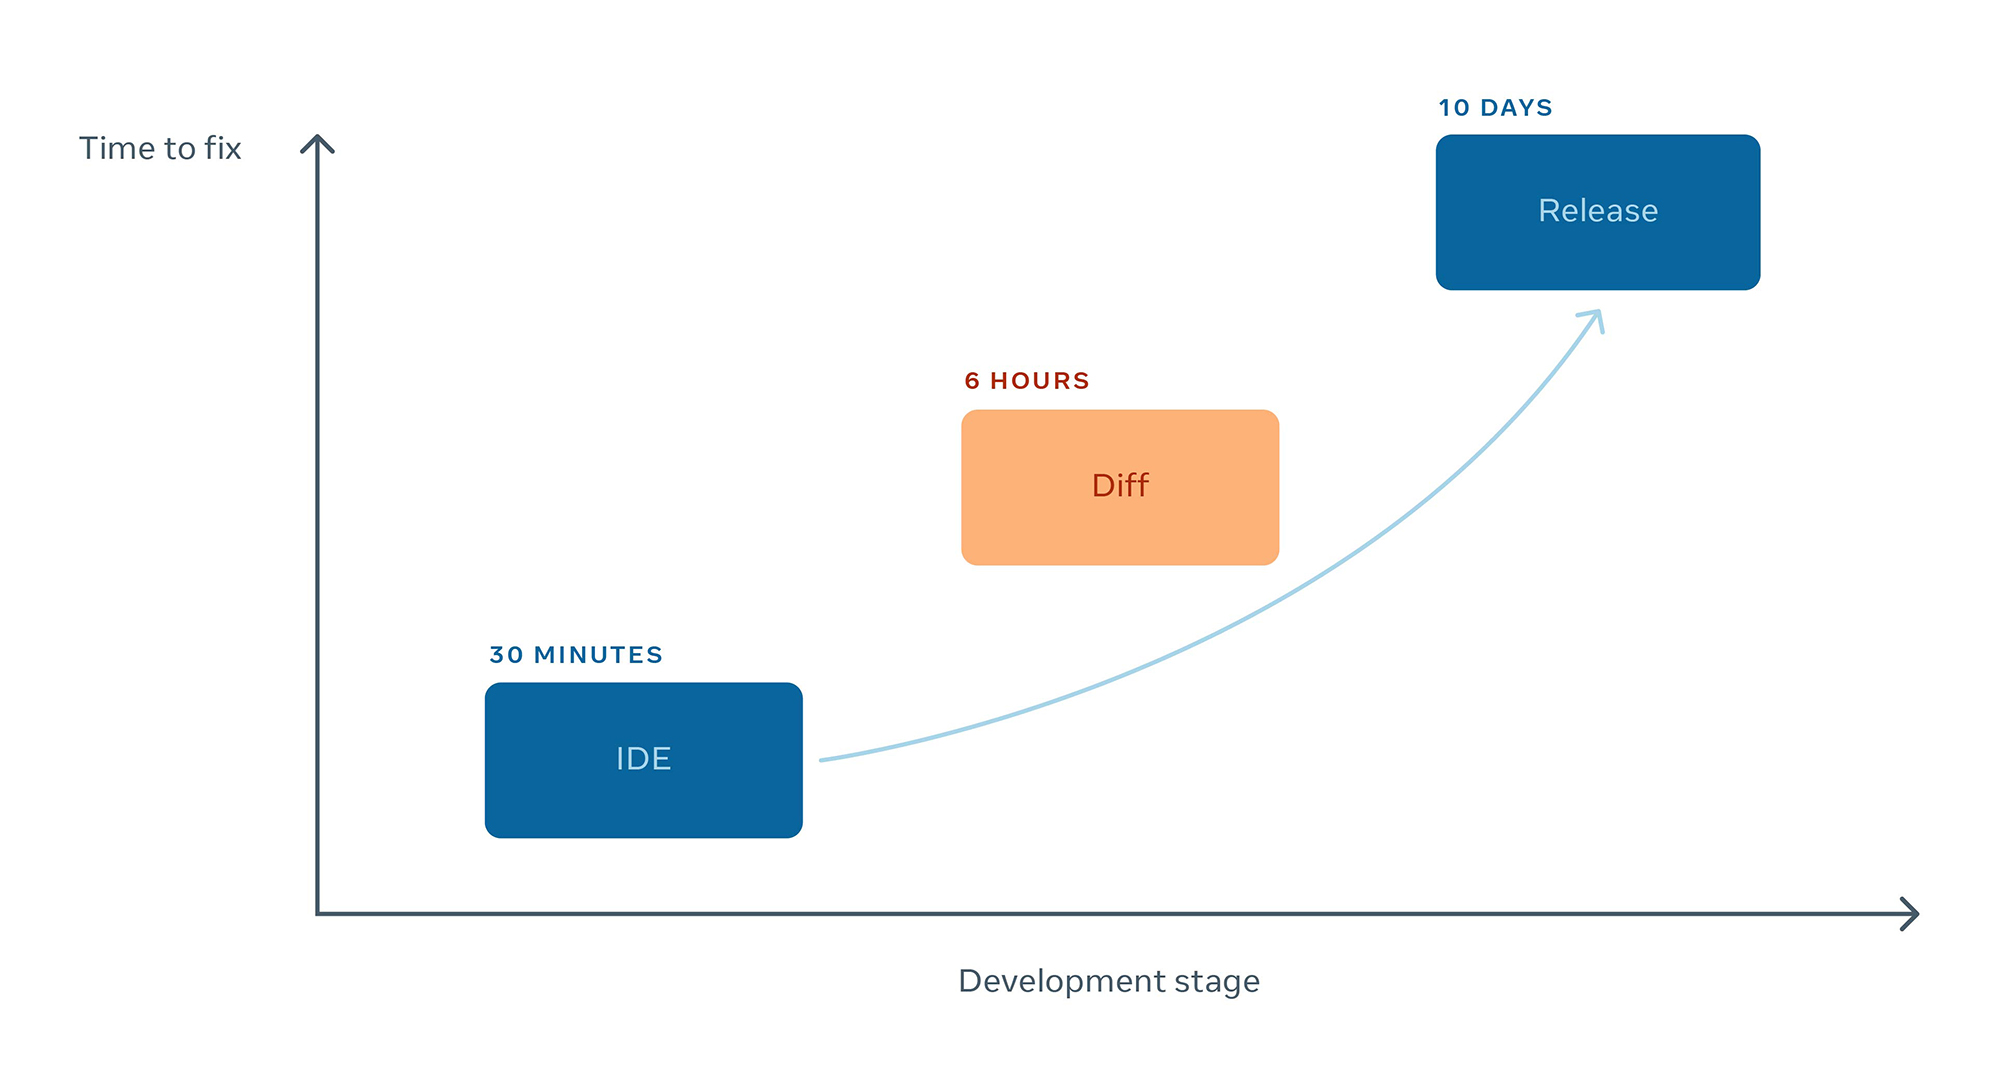 Average time required to fix issues increases exponentially the further a defect makes it in the development stage.